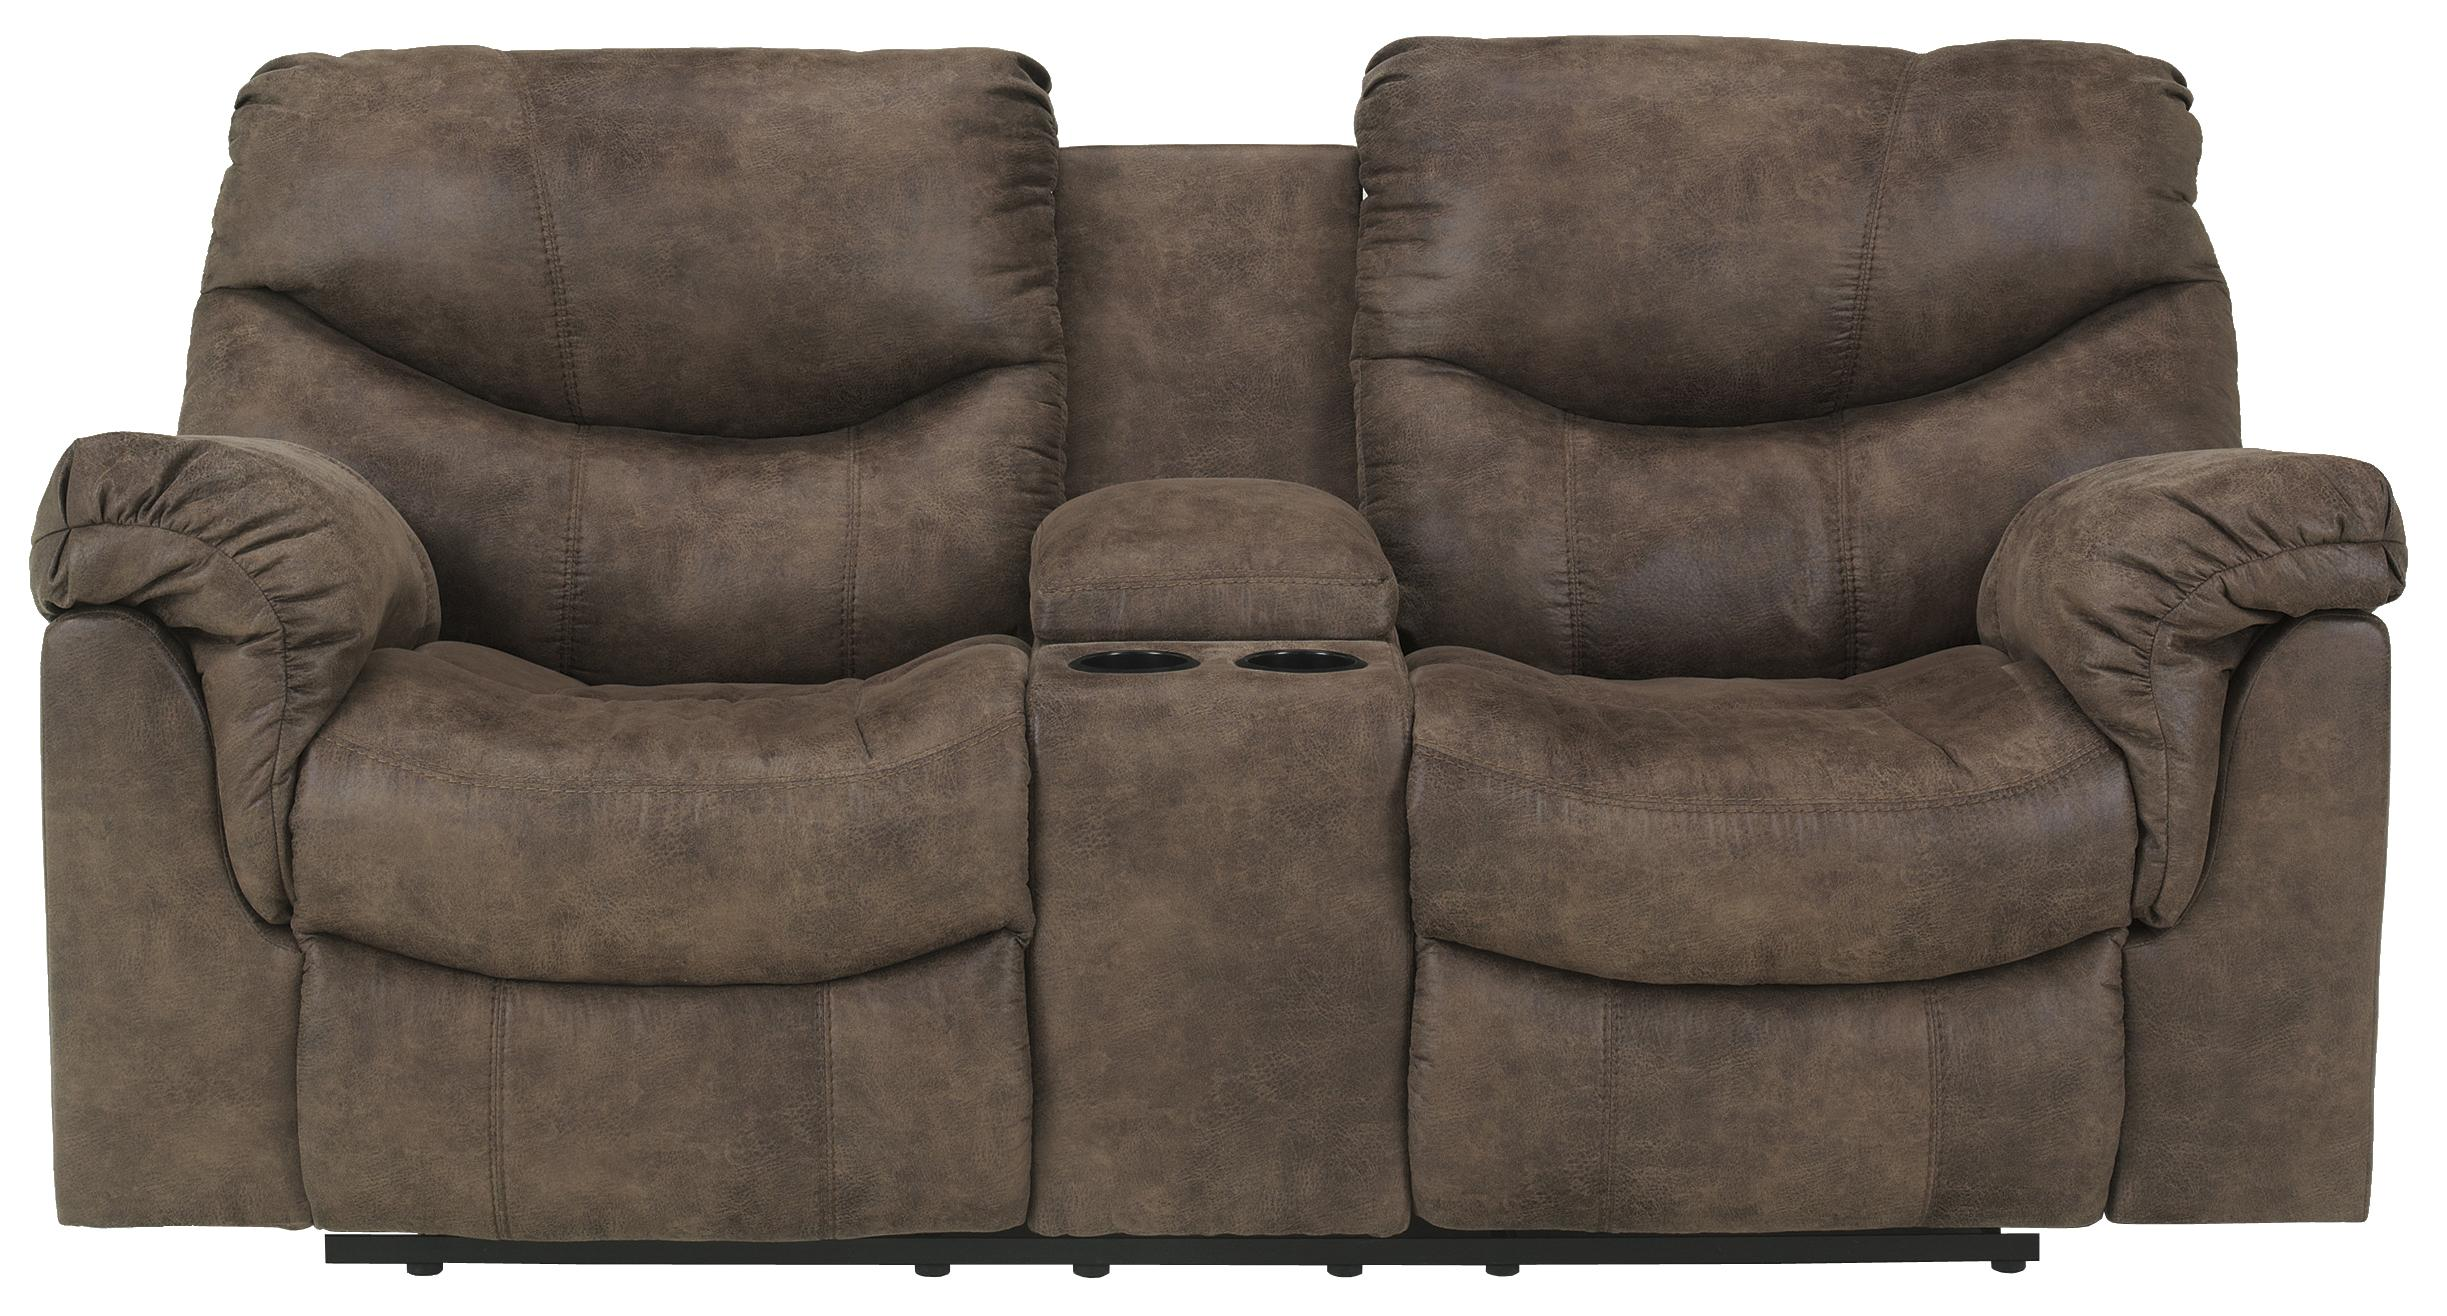 Alzena - Gunsmoke DBL Rec Loveseat w/Console by Signature Design by Ashley at Home Furnishings Direct